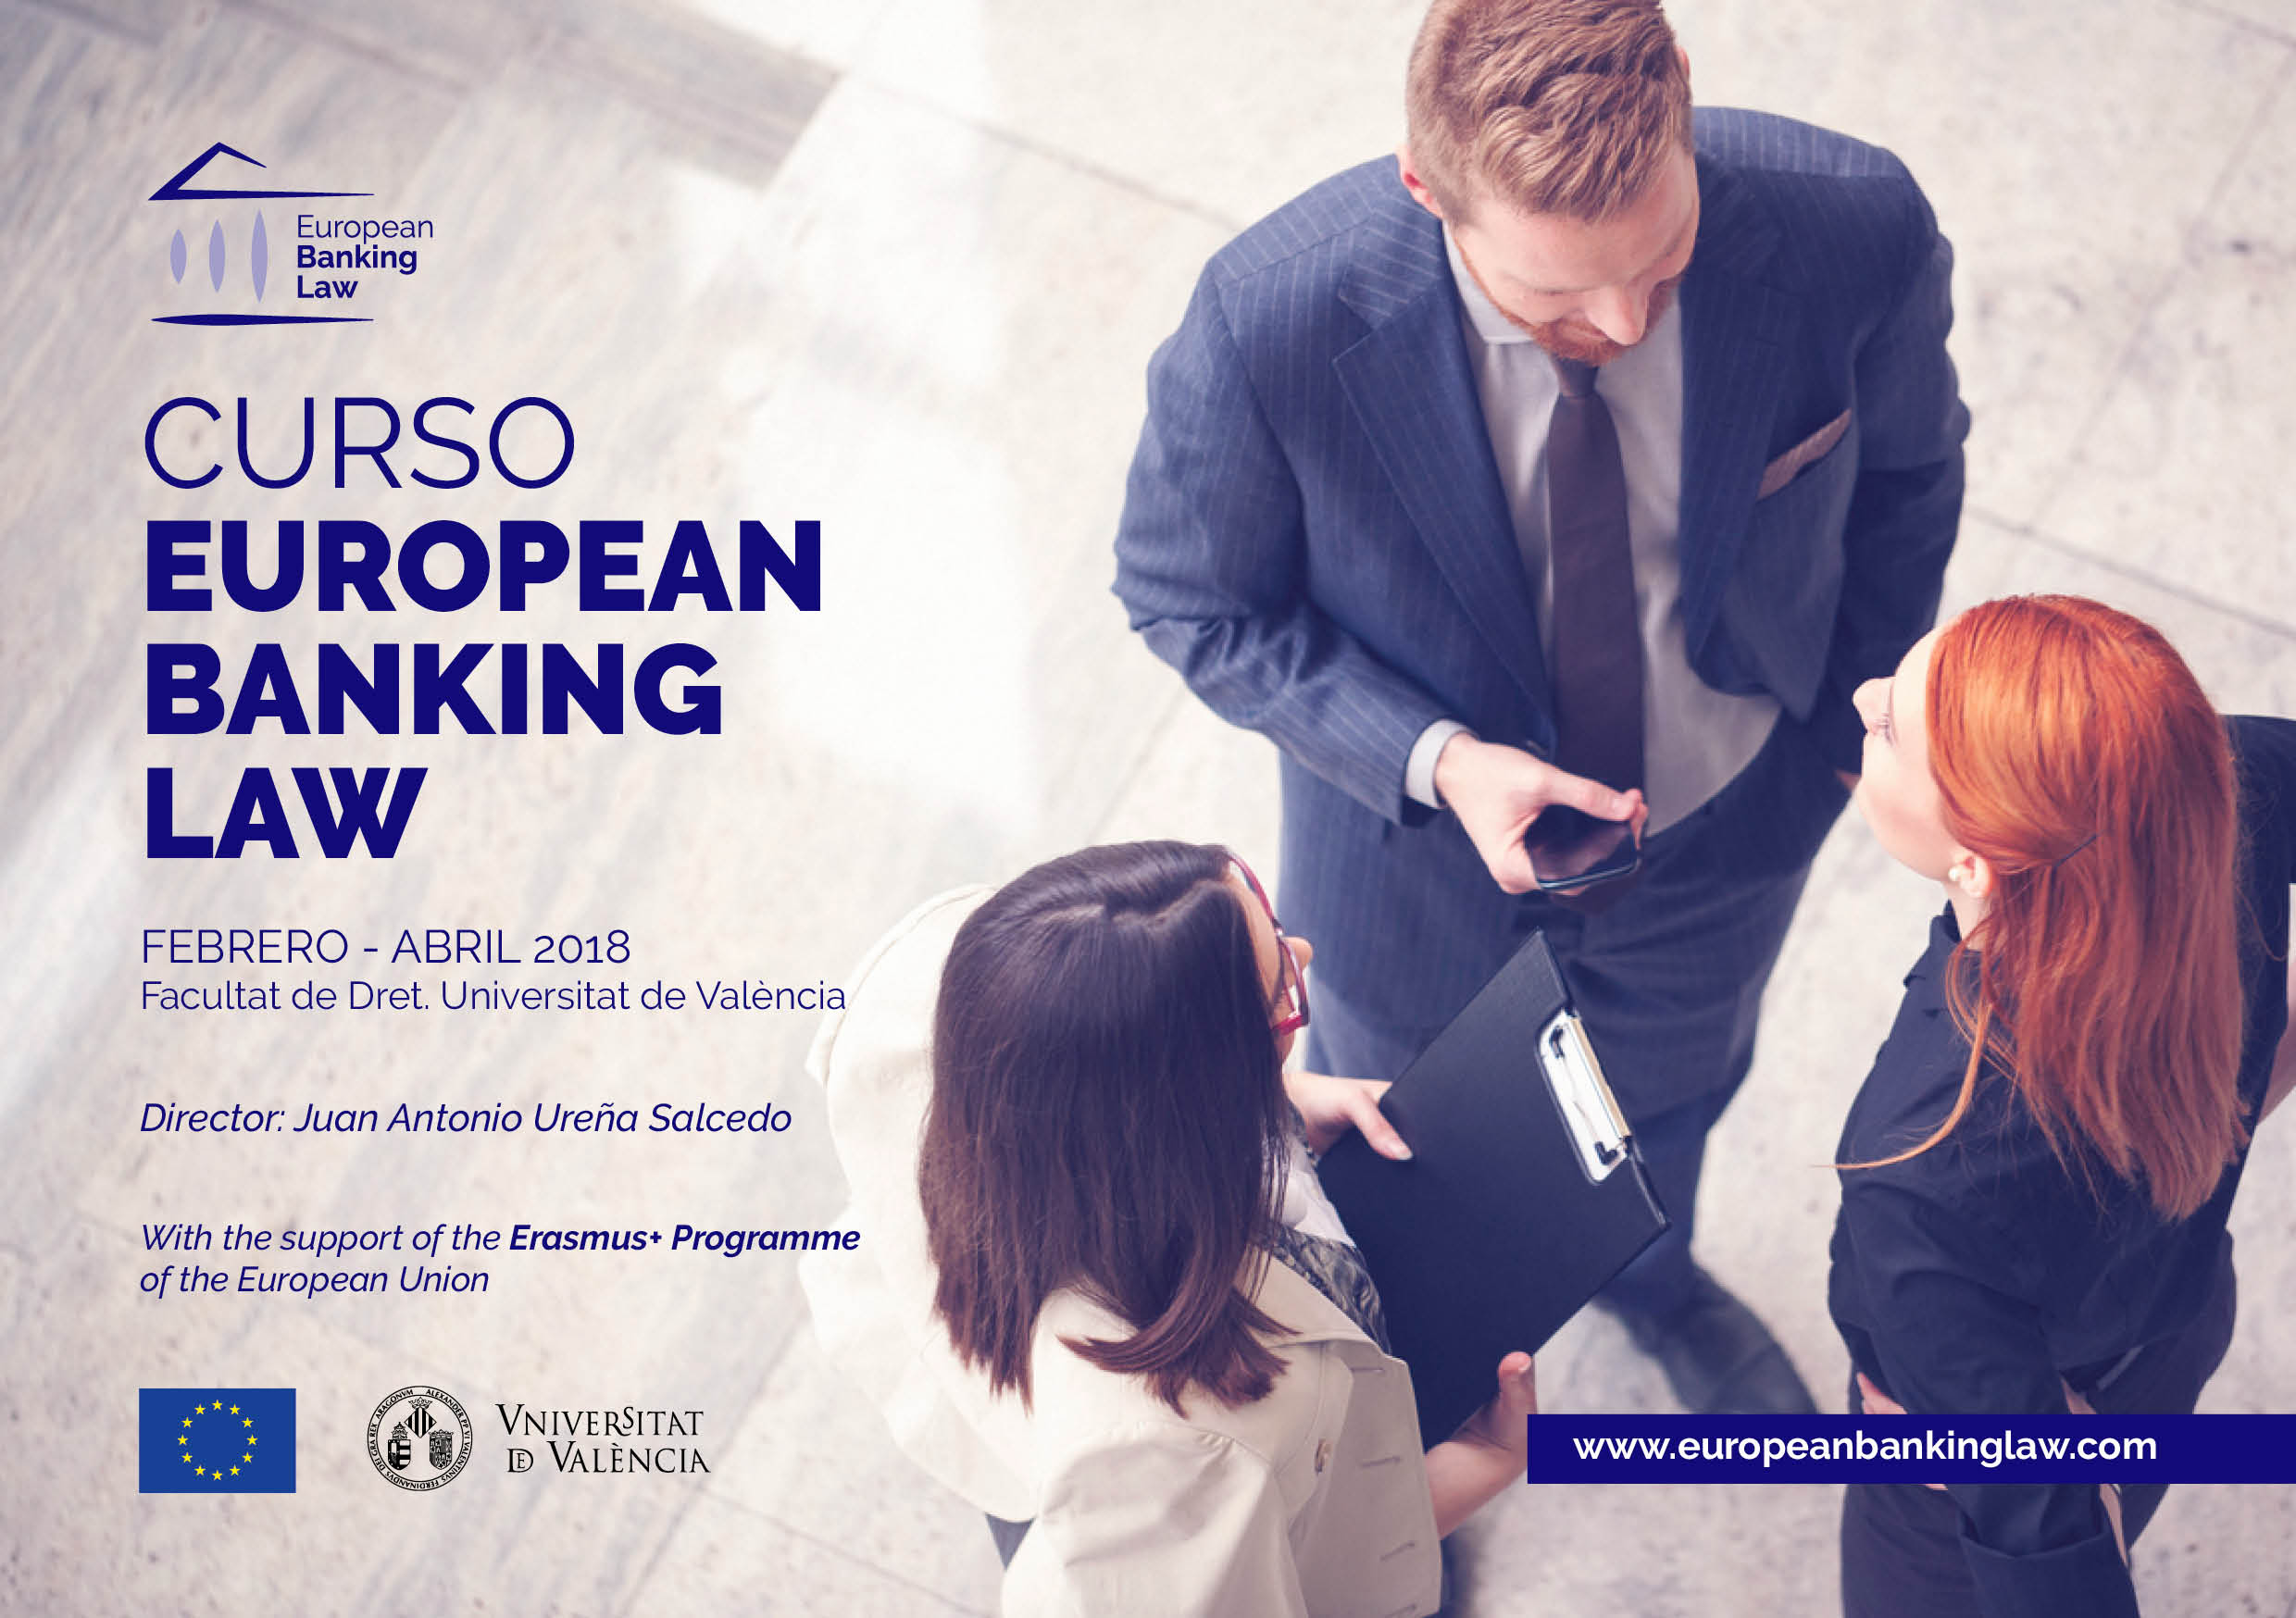 CURS EUROPEAN BANKING LAW